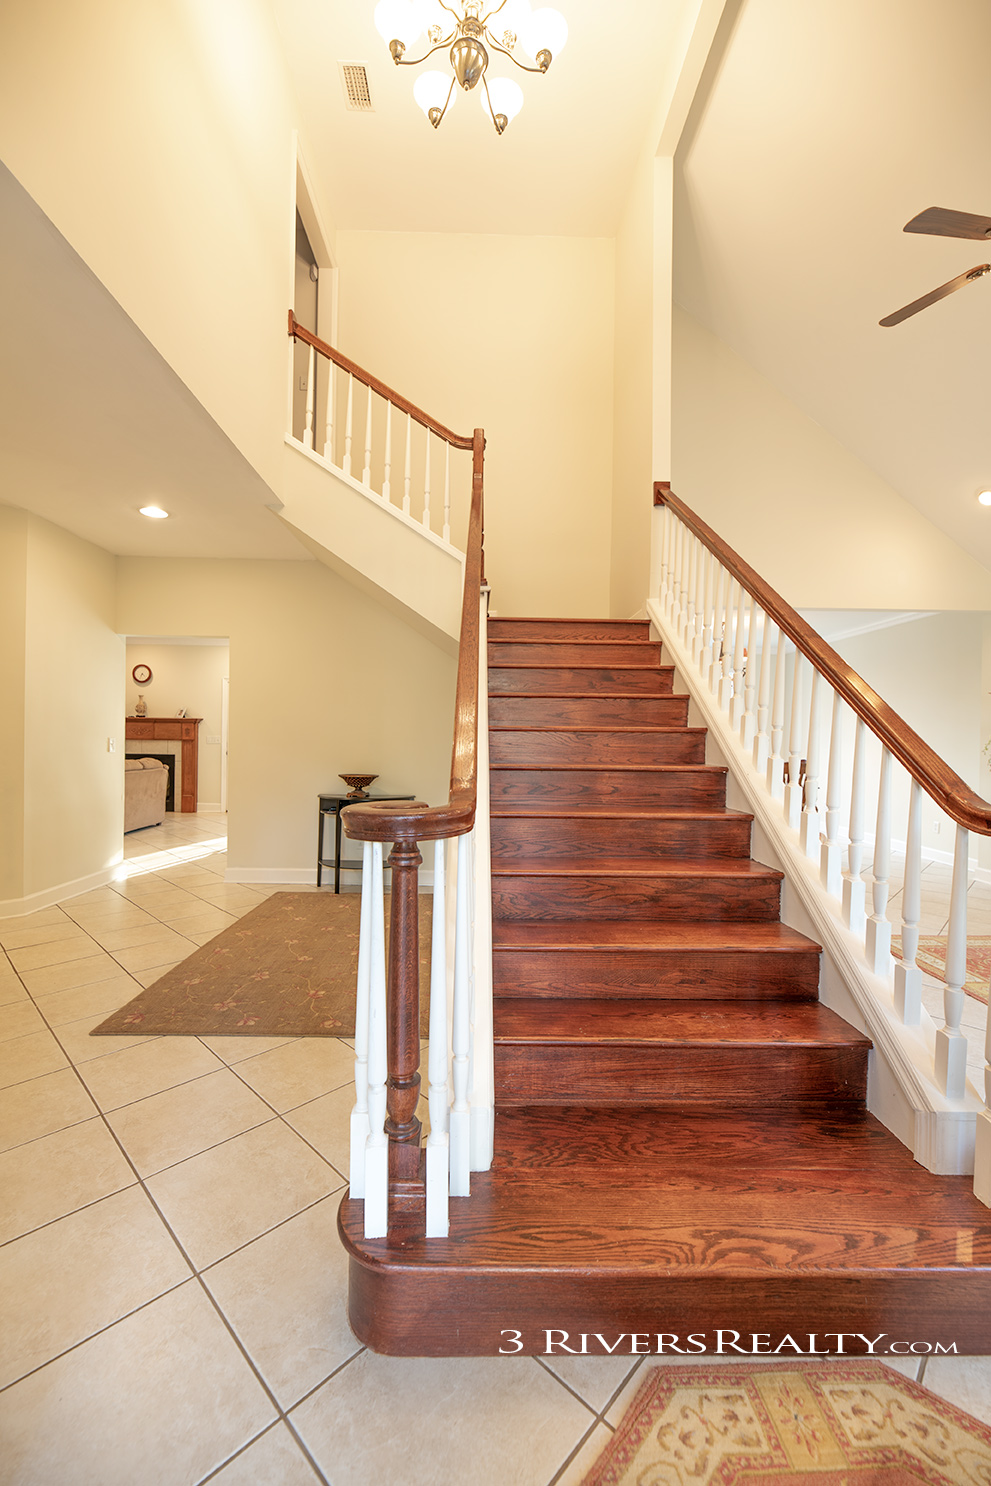 3-rivers-realty,three-rivers-realty,bainbridge-ga-real-estate,mills-brock,taurususa,bainbridge-georgia-homes-for-sale,stairs2.jpg